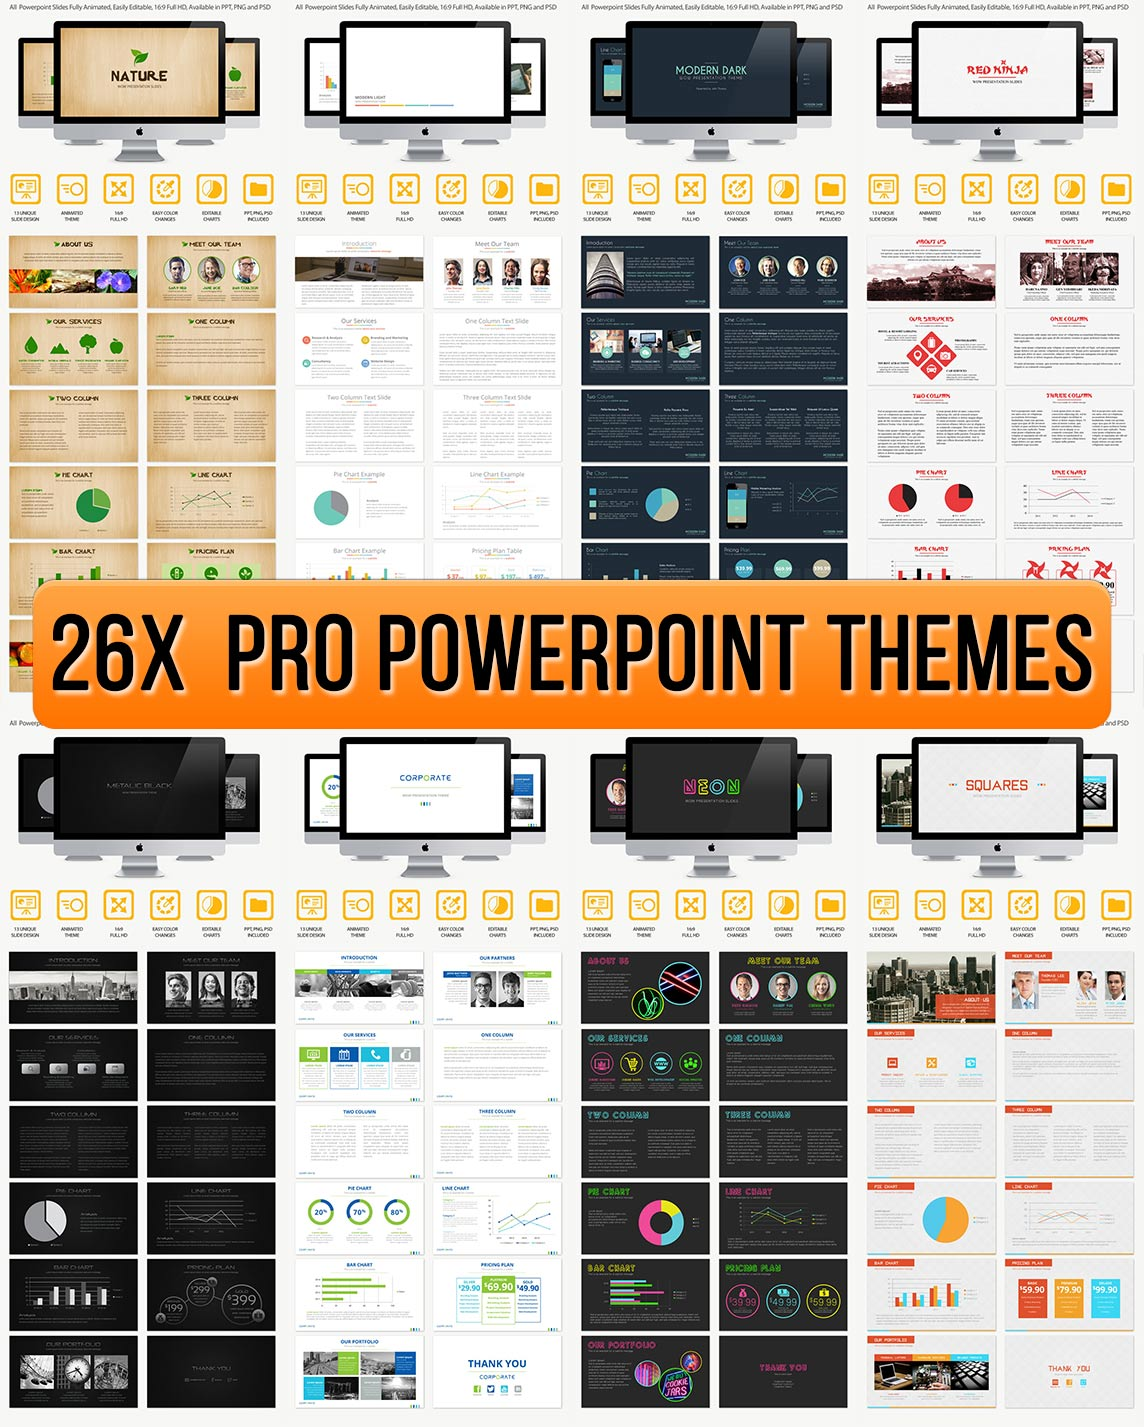 ppt-themes2